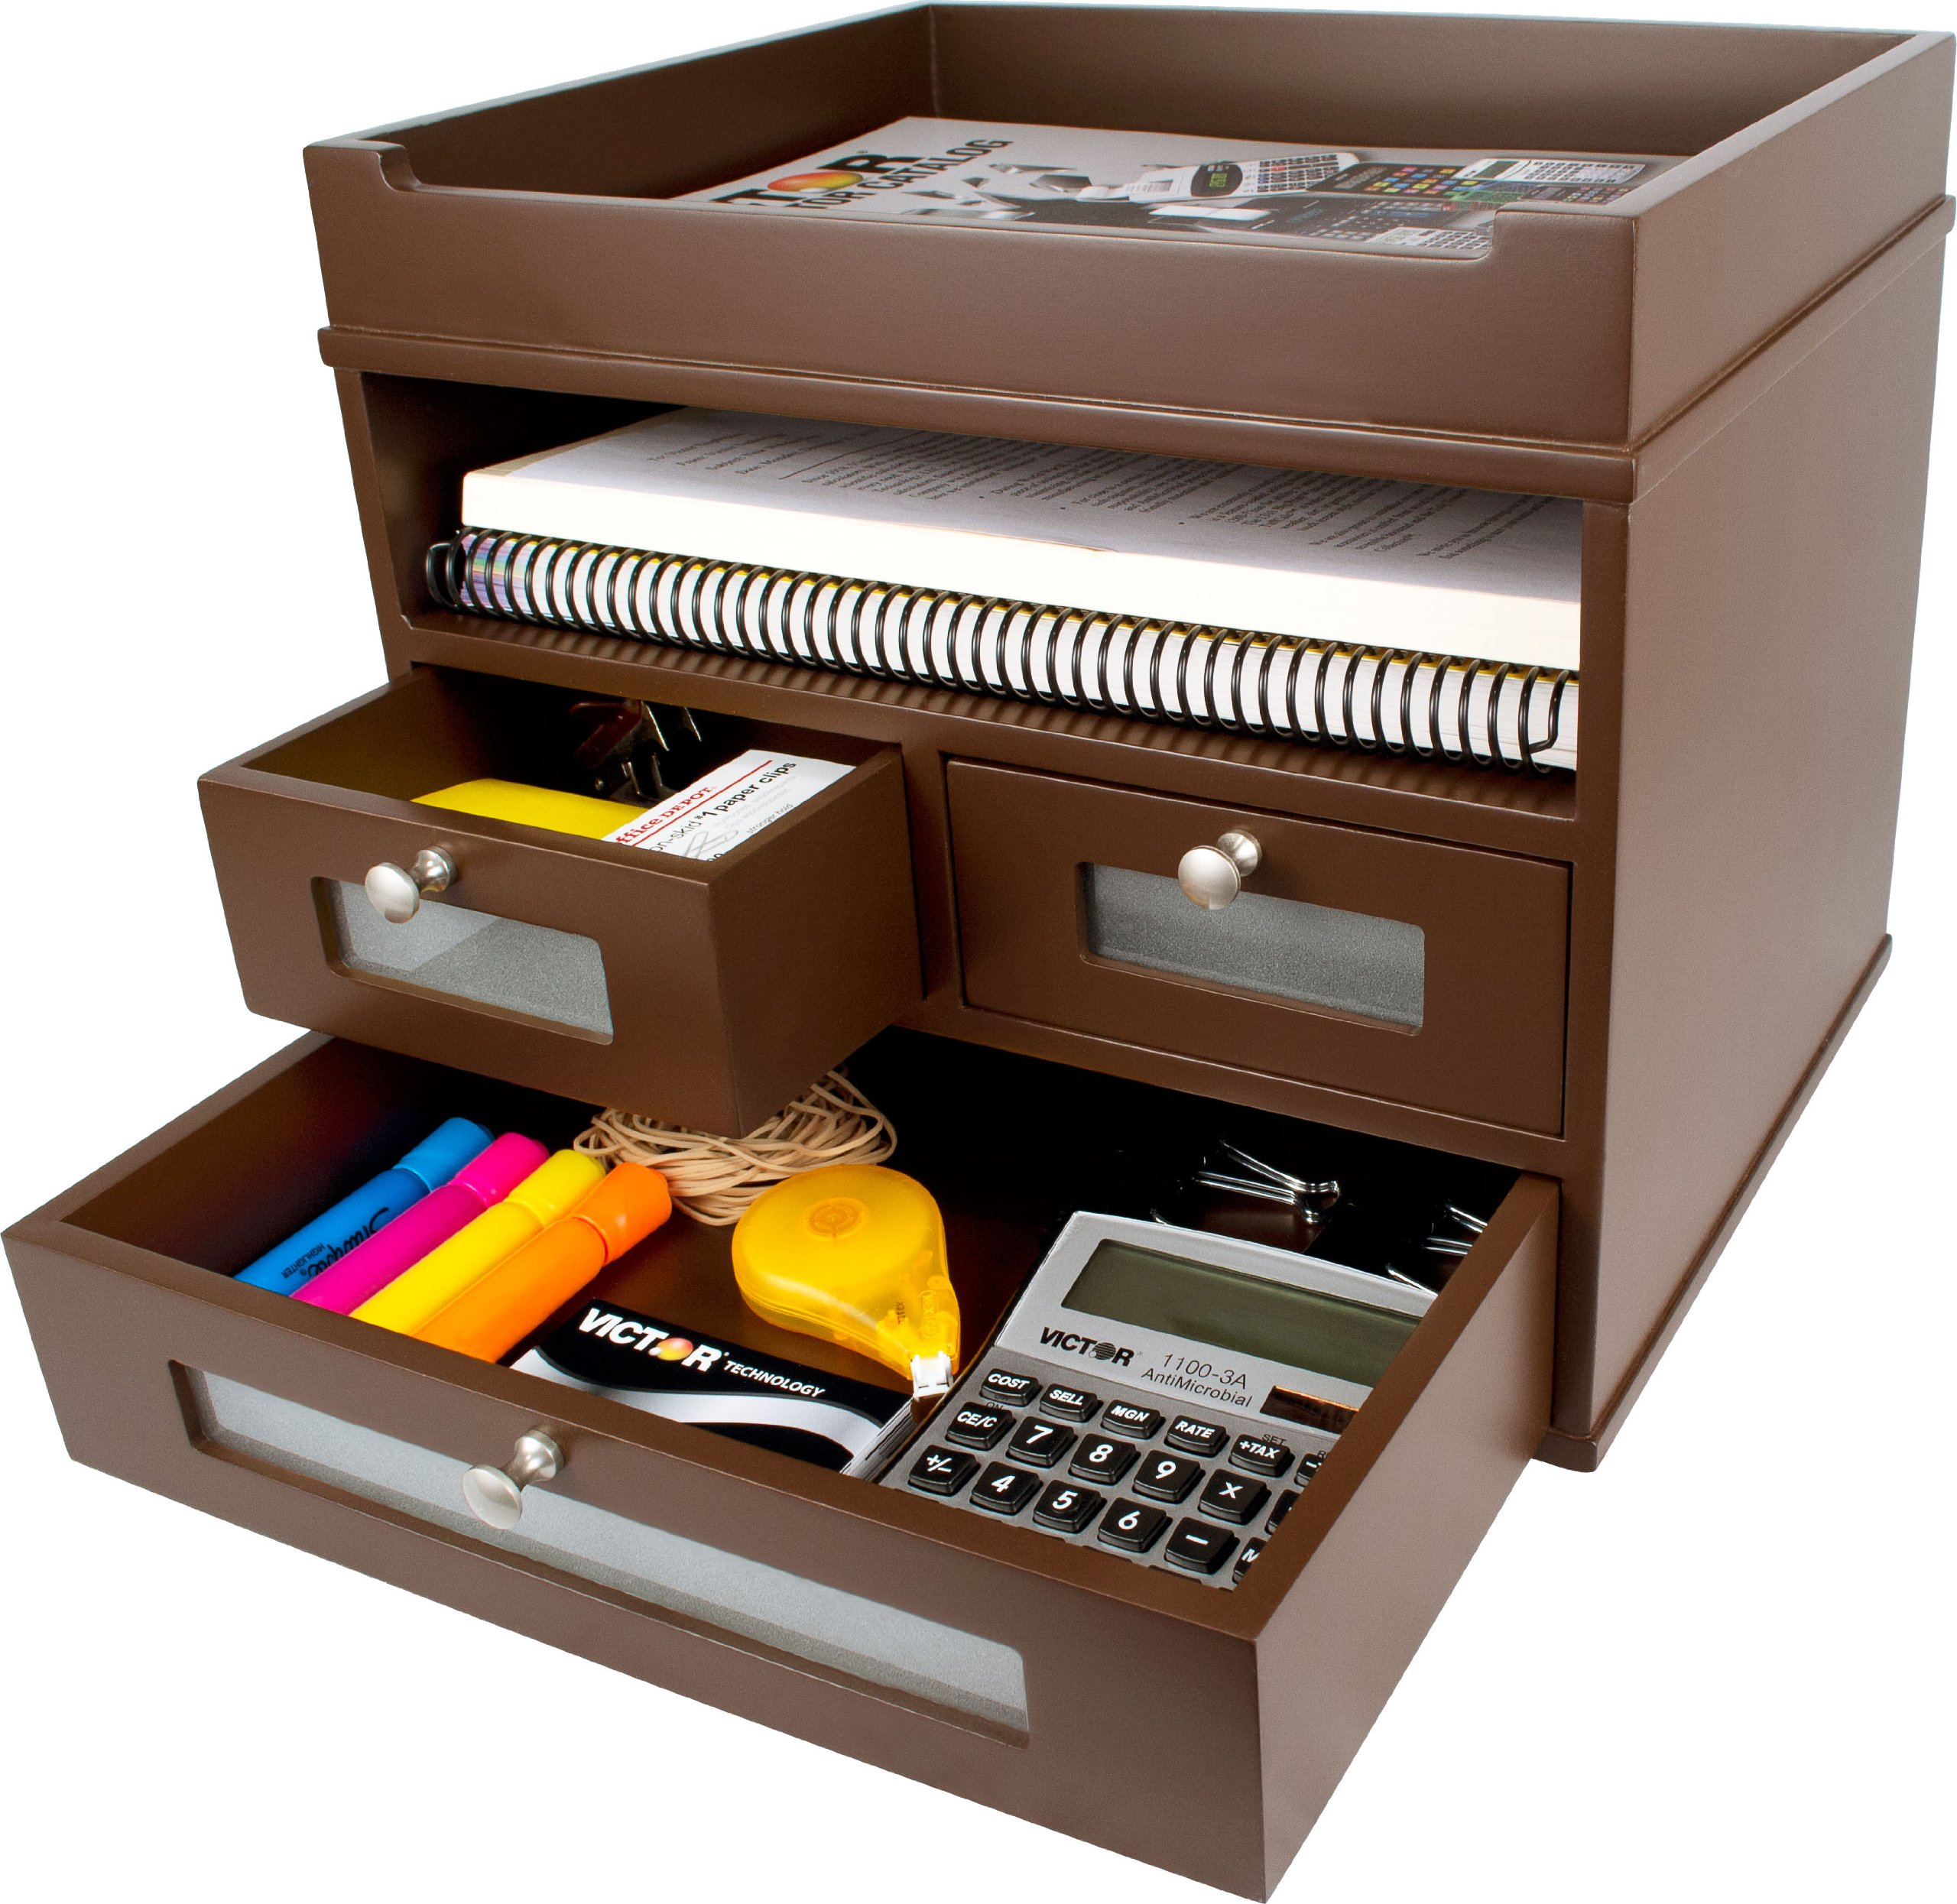 Victor Wood Tidy Tower Desktop Organizer, B5500 (Mocha Brown) by Victor (Image #1)